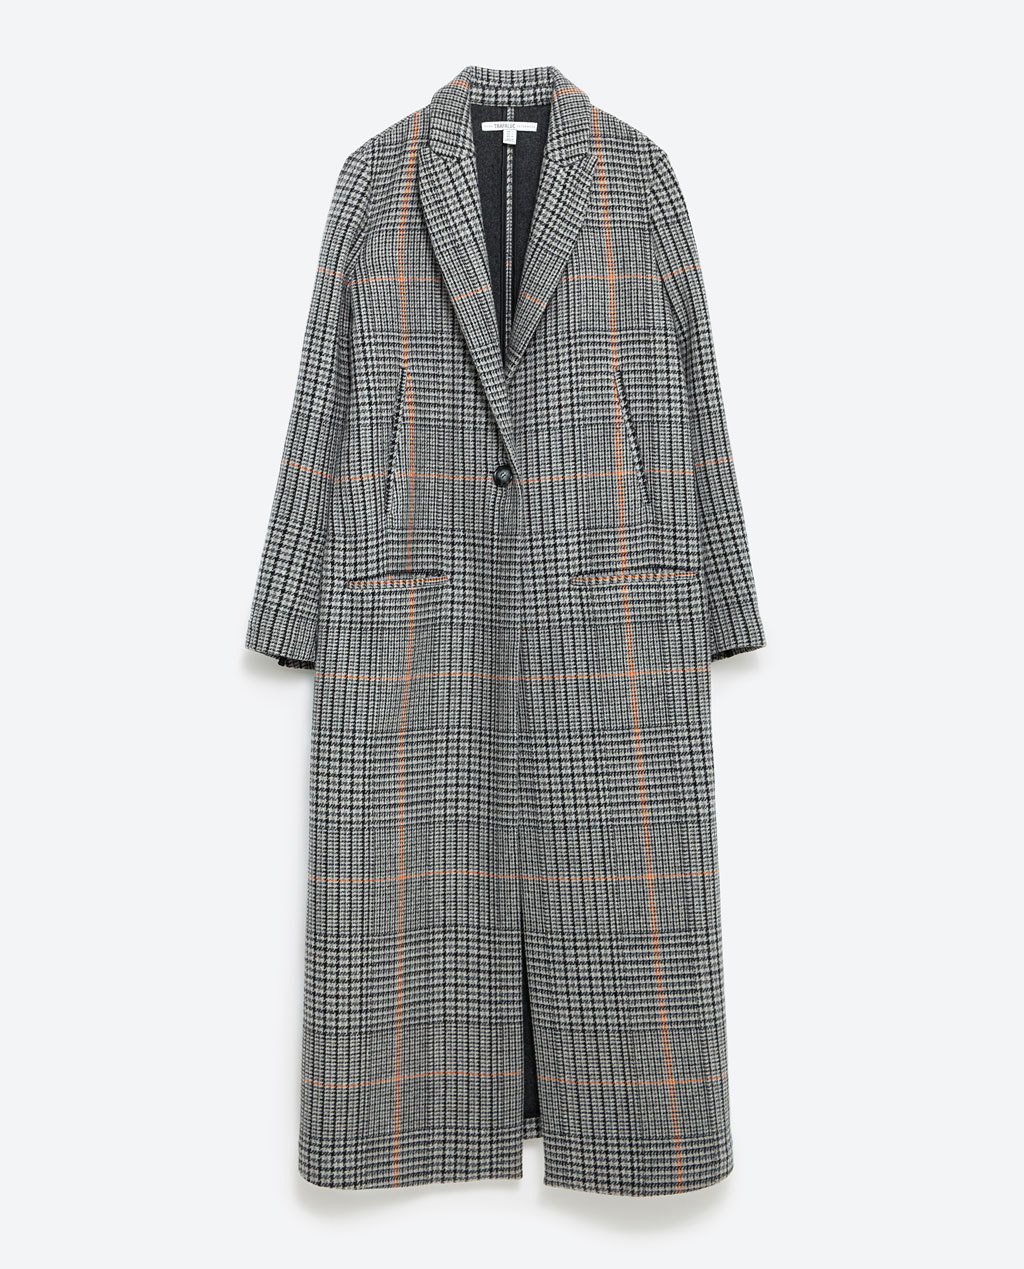 Long Coat - pattern: checked/gingham; style: single breasted; collar: standard lapel/rever collar; length: calf length; secondary colour: nude; predominant colour: light grey; occasions: casual, creative work; fit: straight cut (boxy); sleeve length: long sleeve; sleeve style: standard; collar break: medium; pattern size: standard; texture group: woven light midweight; season: a/w 2015; wardrobe: highlight